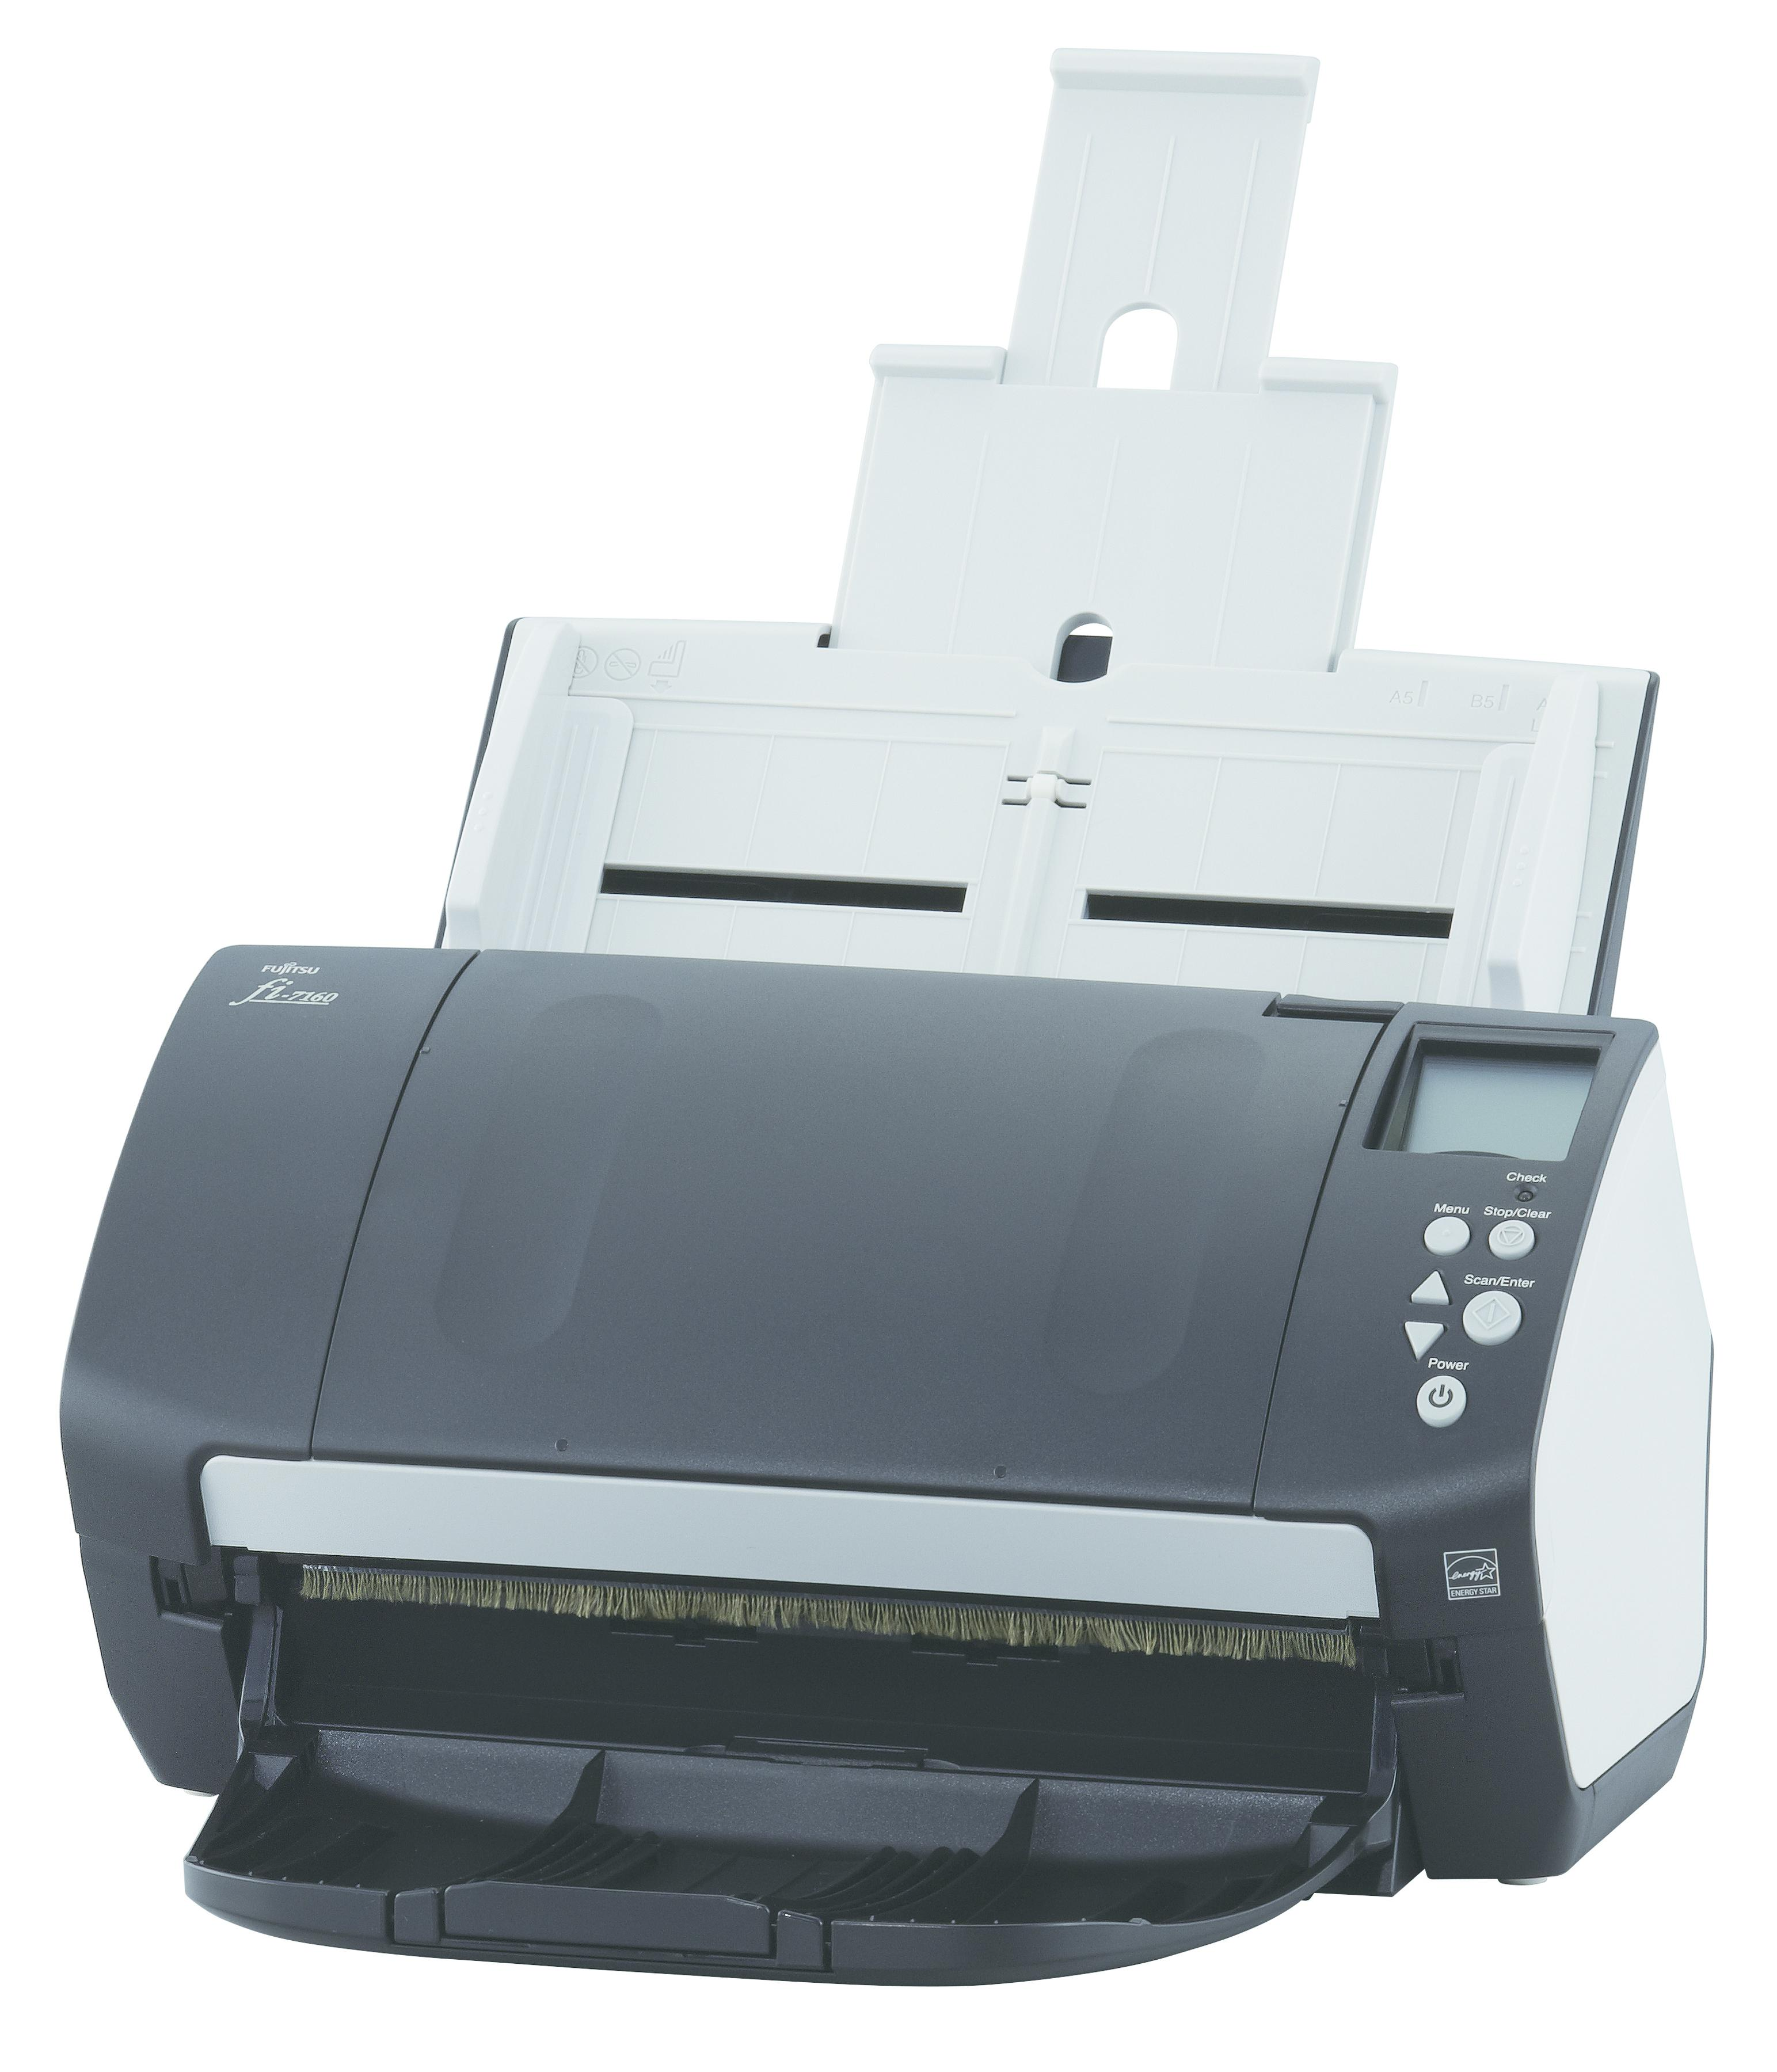 Fujitsu fi-7160 Document scanner duplex600x600 dpi